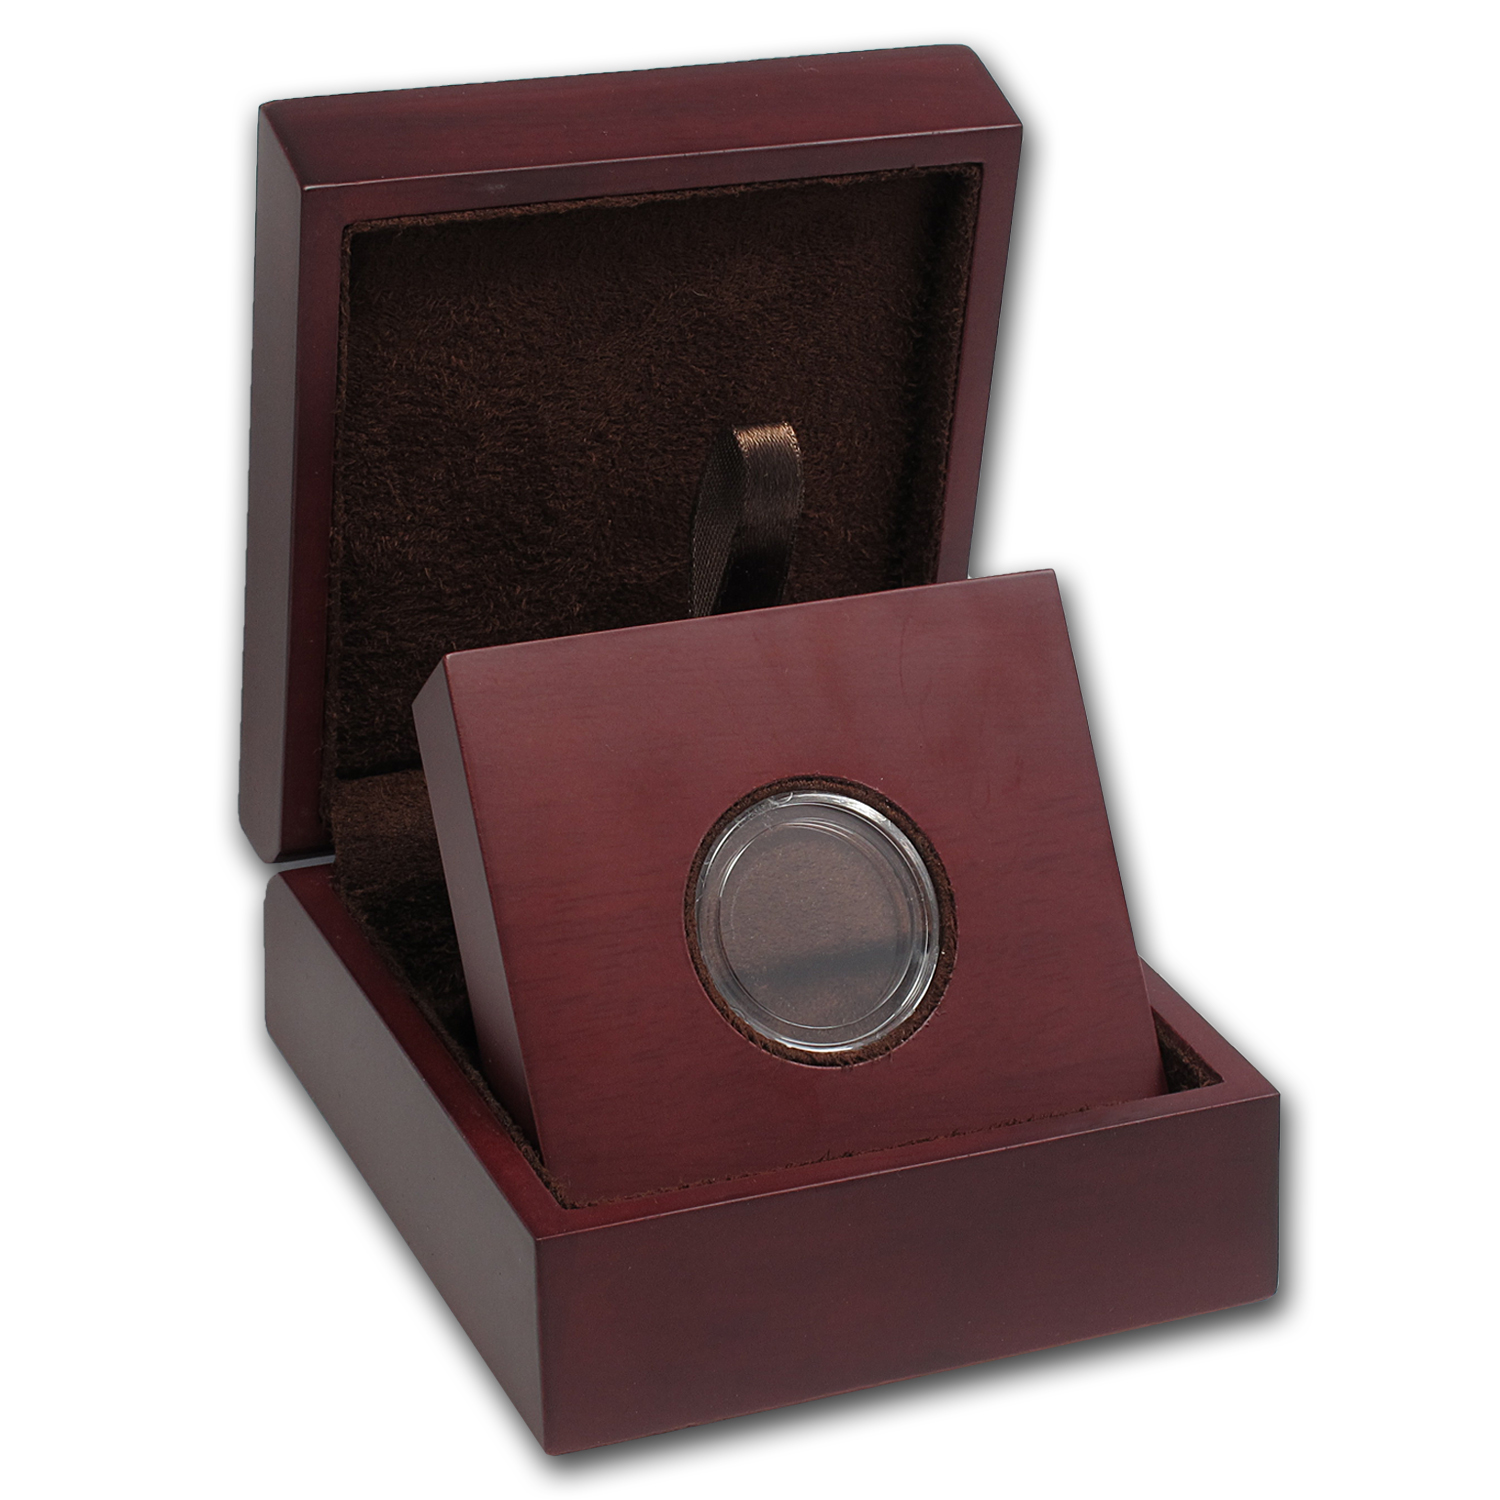 APMEX Wood Gift Box - Includes 24 mm Direct Fit Air-Tite Holder